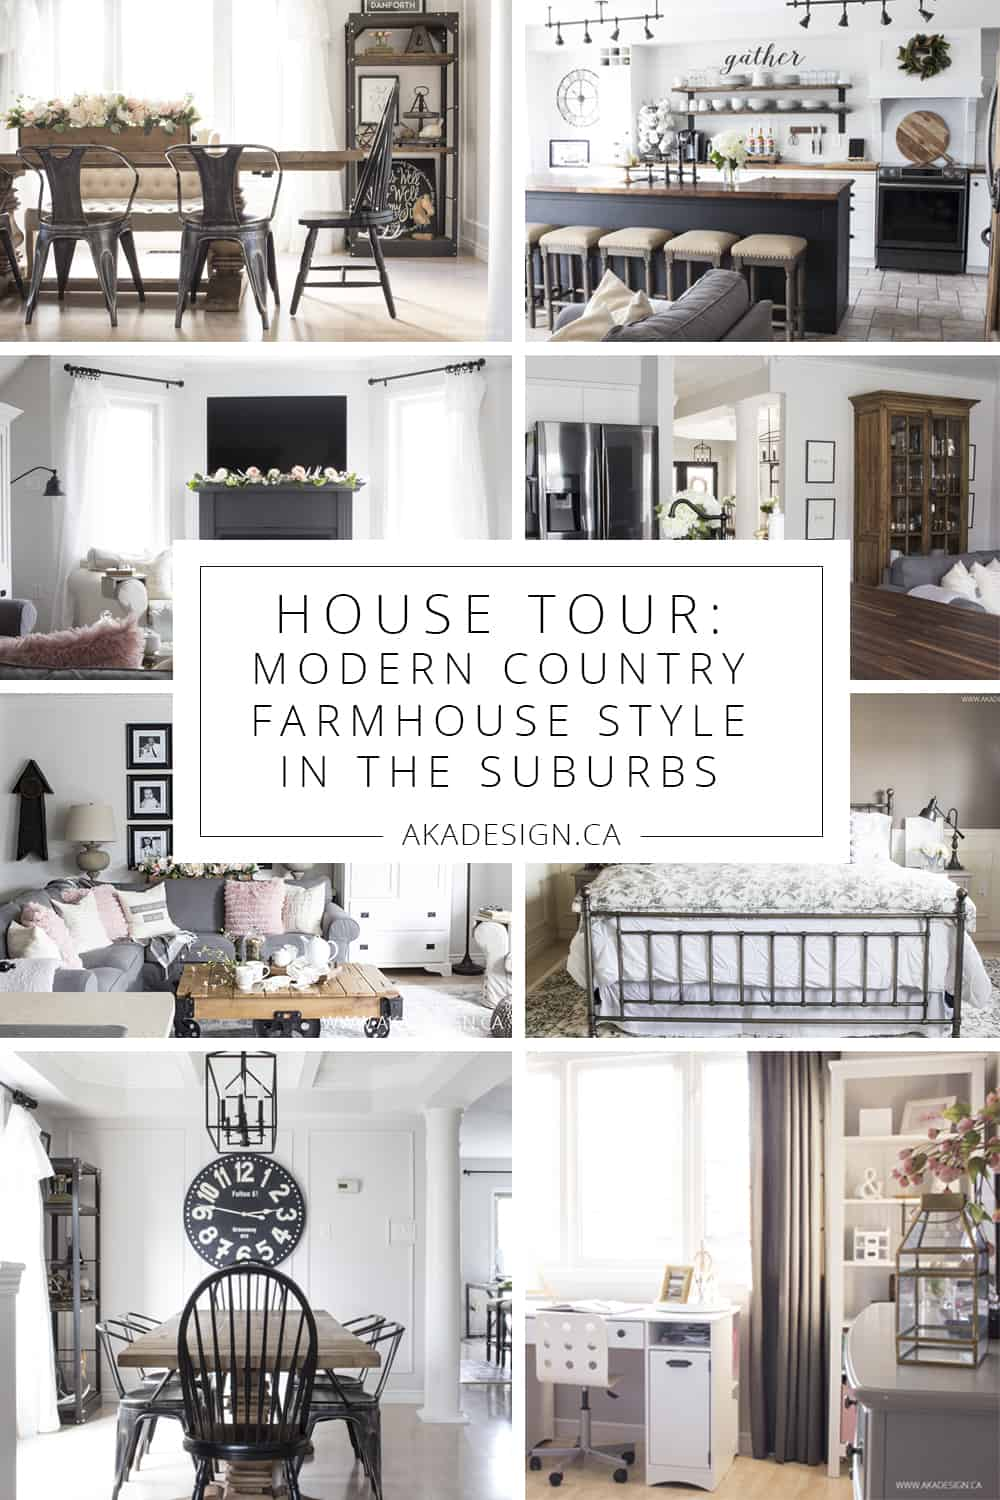 Modern Country Farmhouse Style in the Suburbs